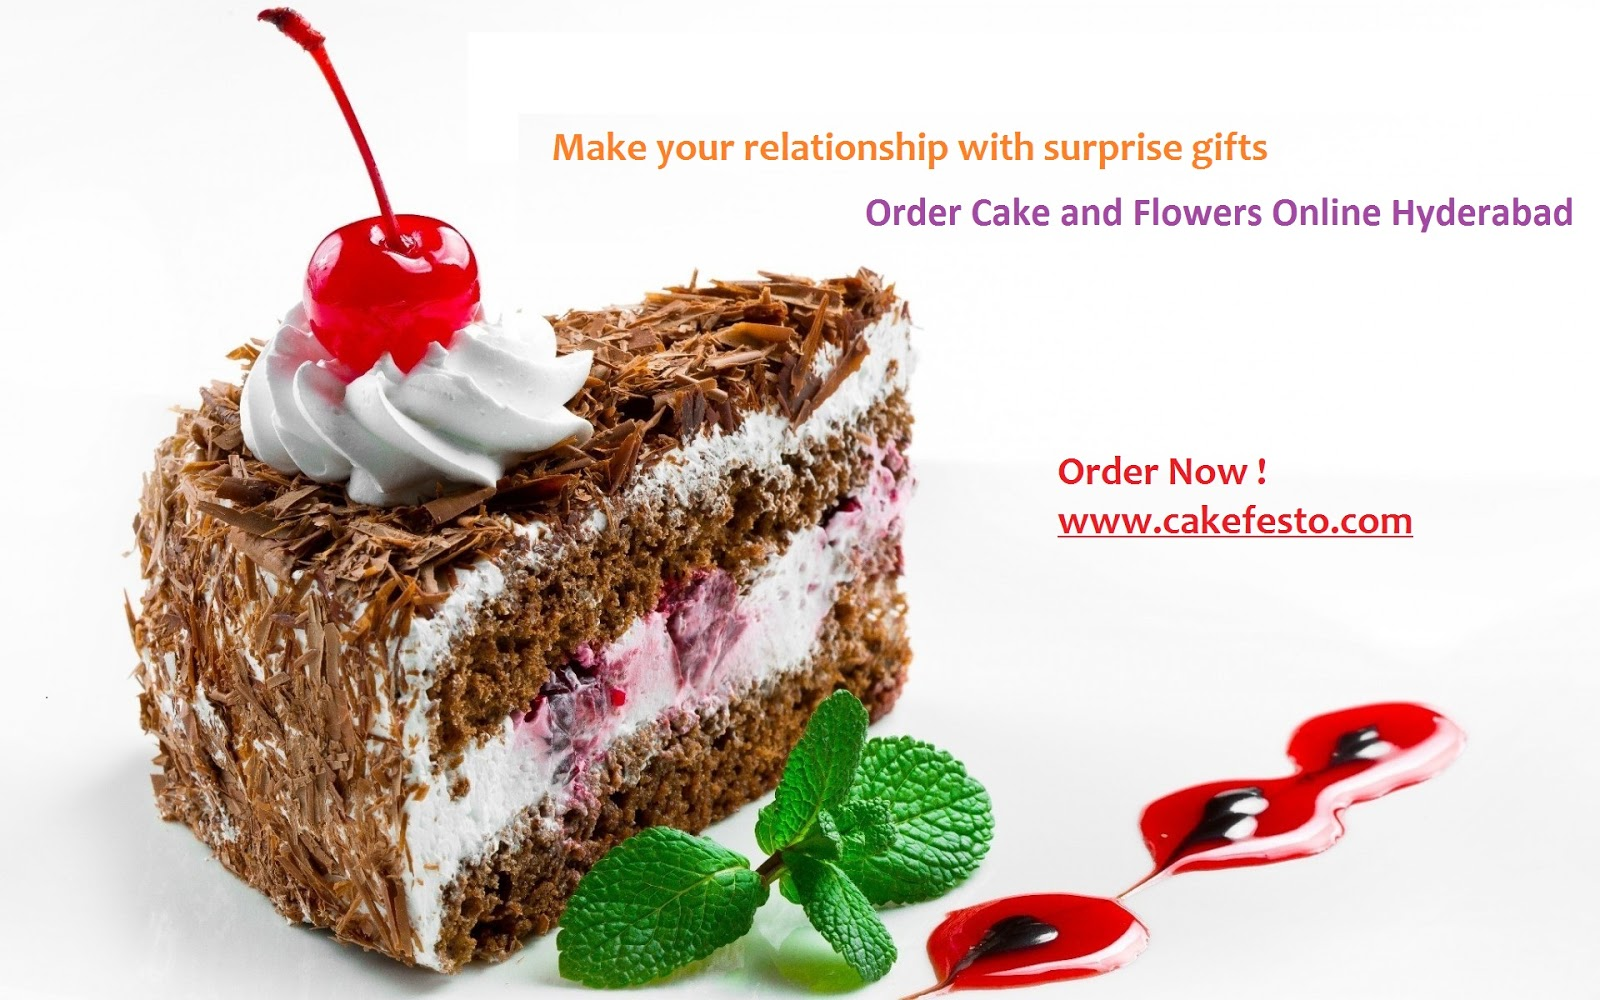 Order Cake And Flowers Online Hyderabad Make Your